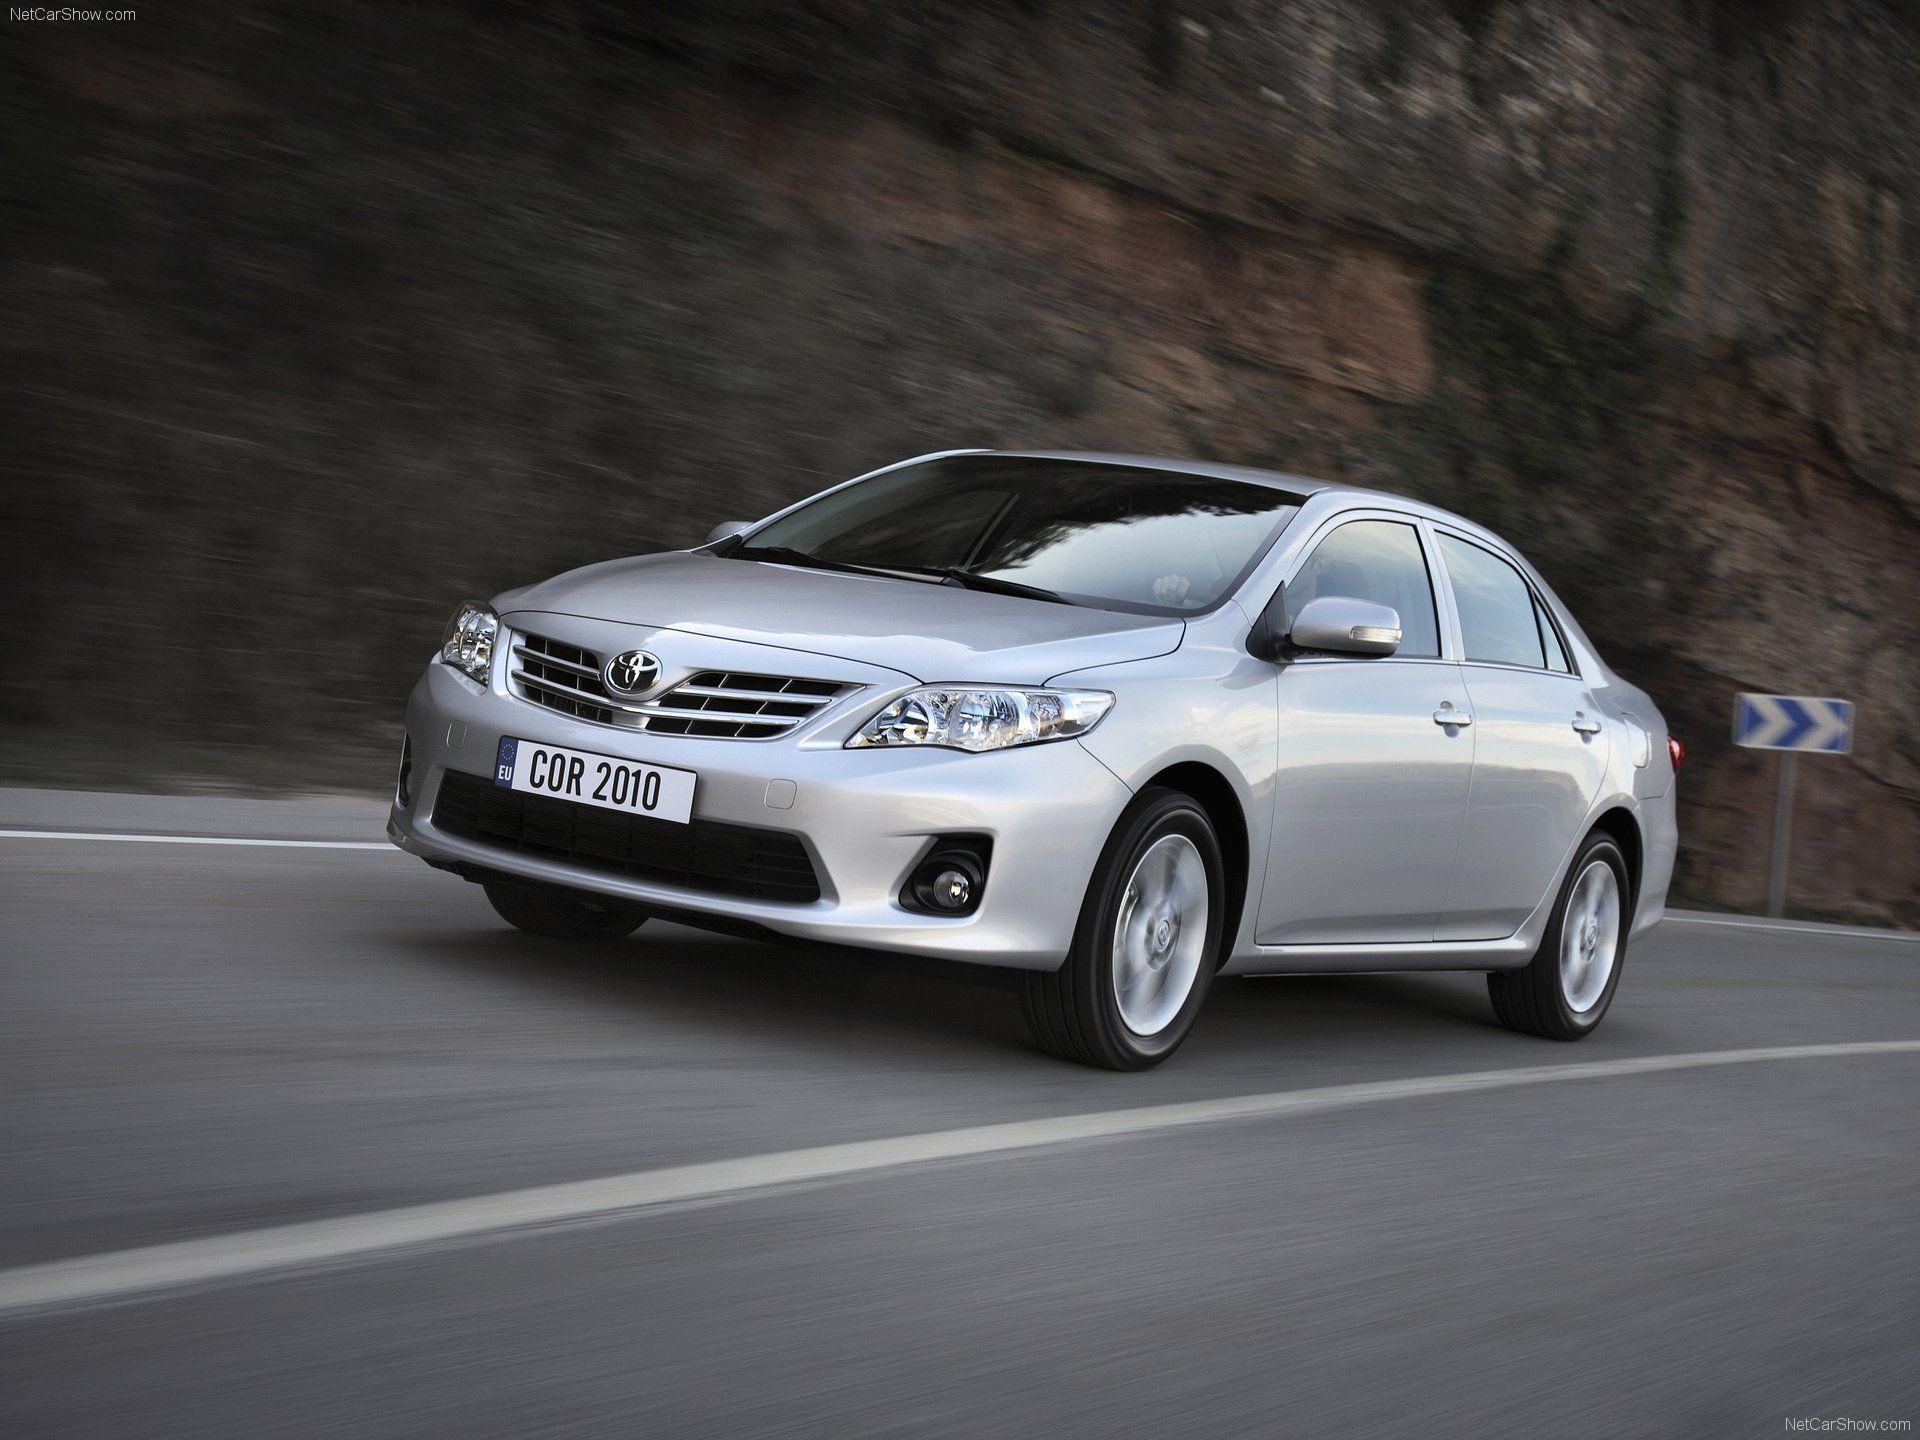 Toyota Corolla (2010) - pictures, information & specs